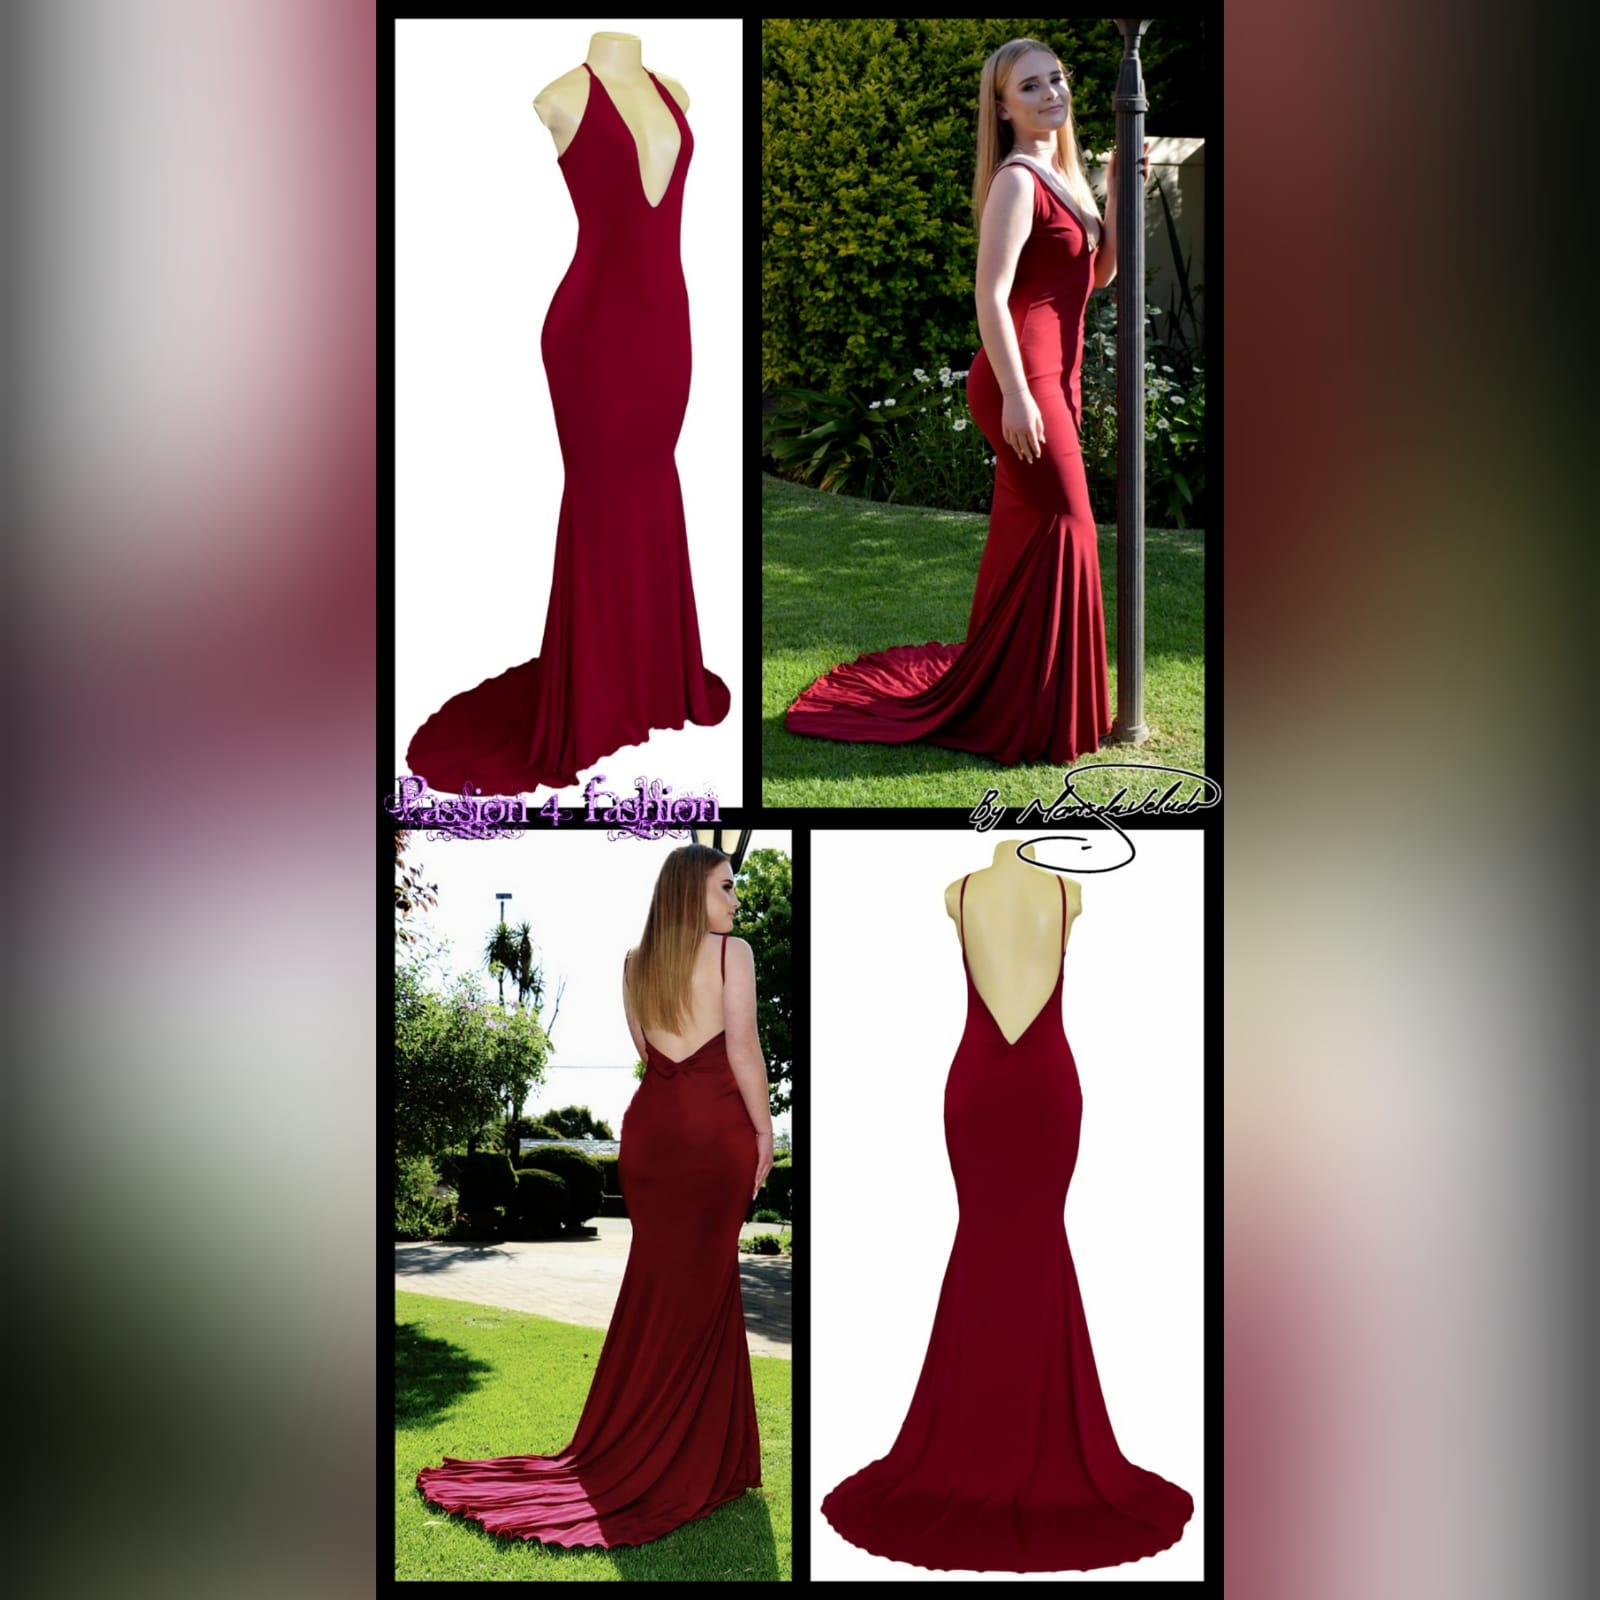 Deep red plunging neckline prom dress 4 deep red plunging neckline prom dress, low open back with thin should straps and a long train.